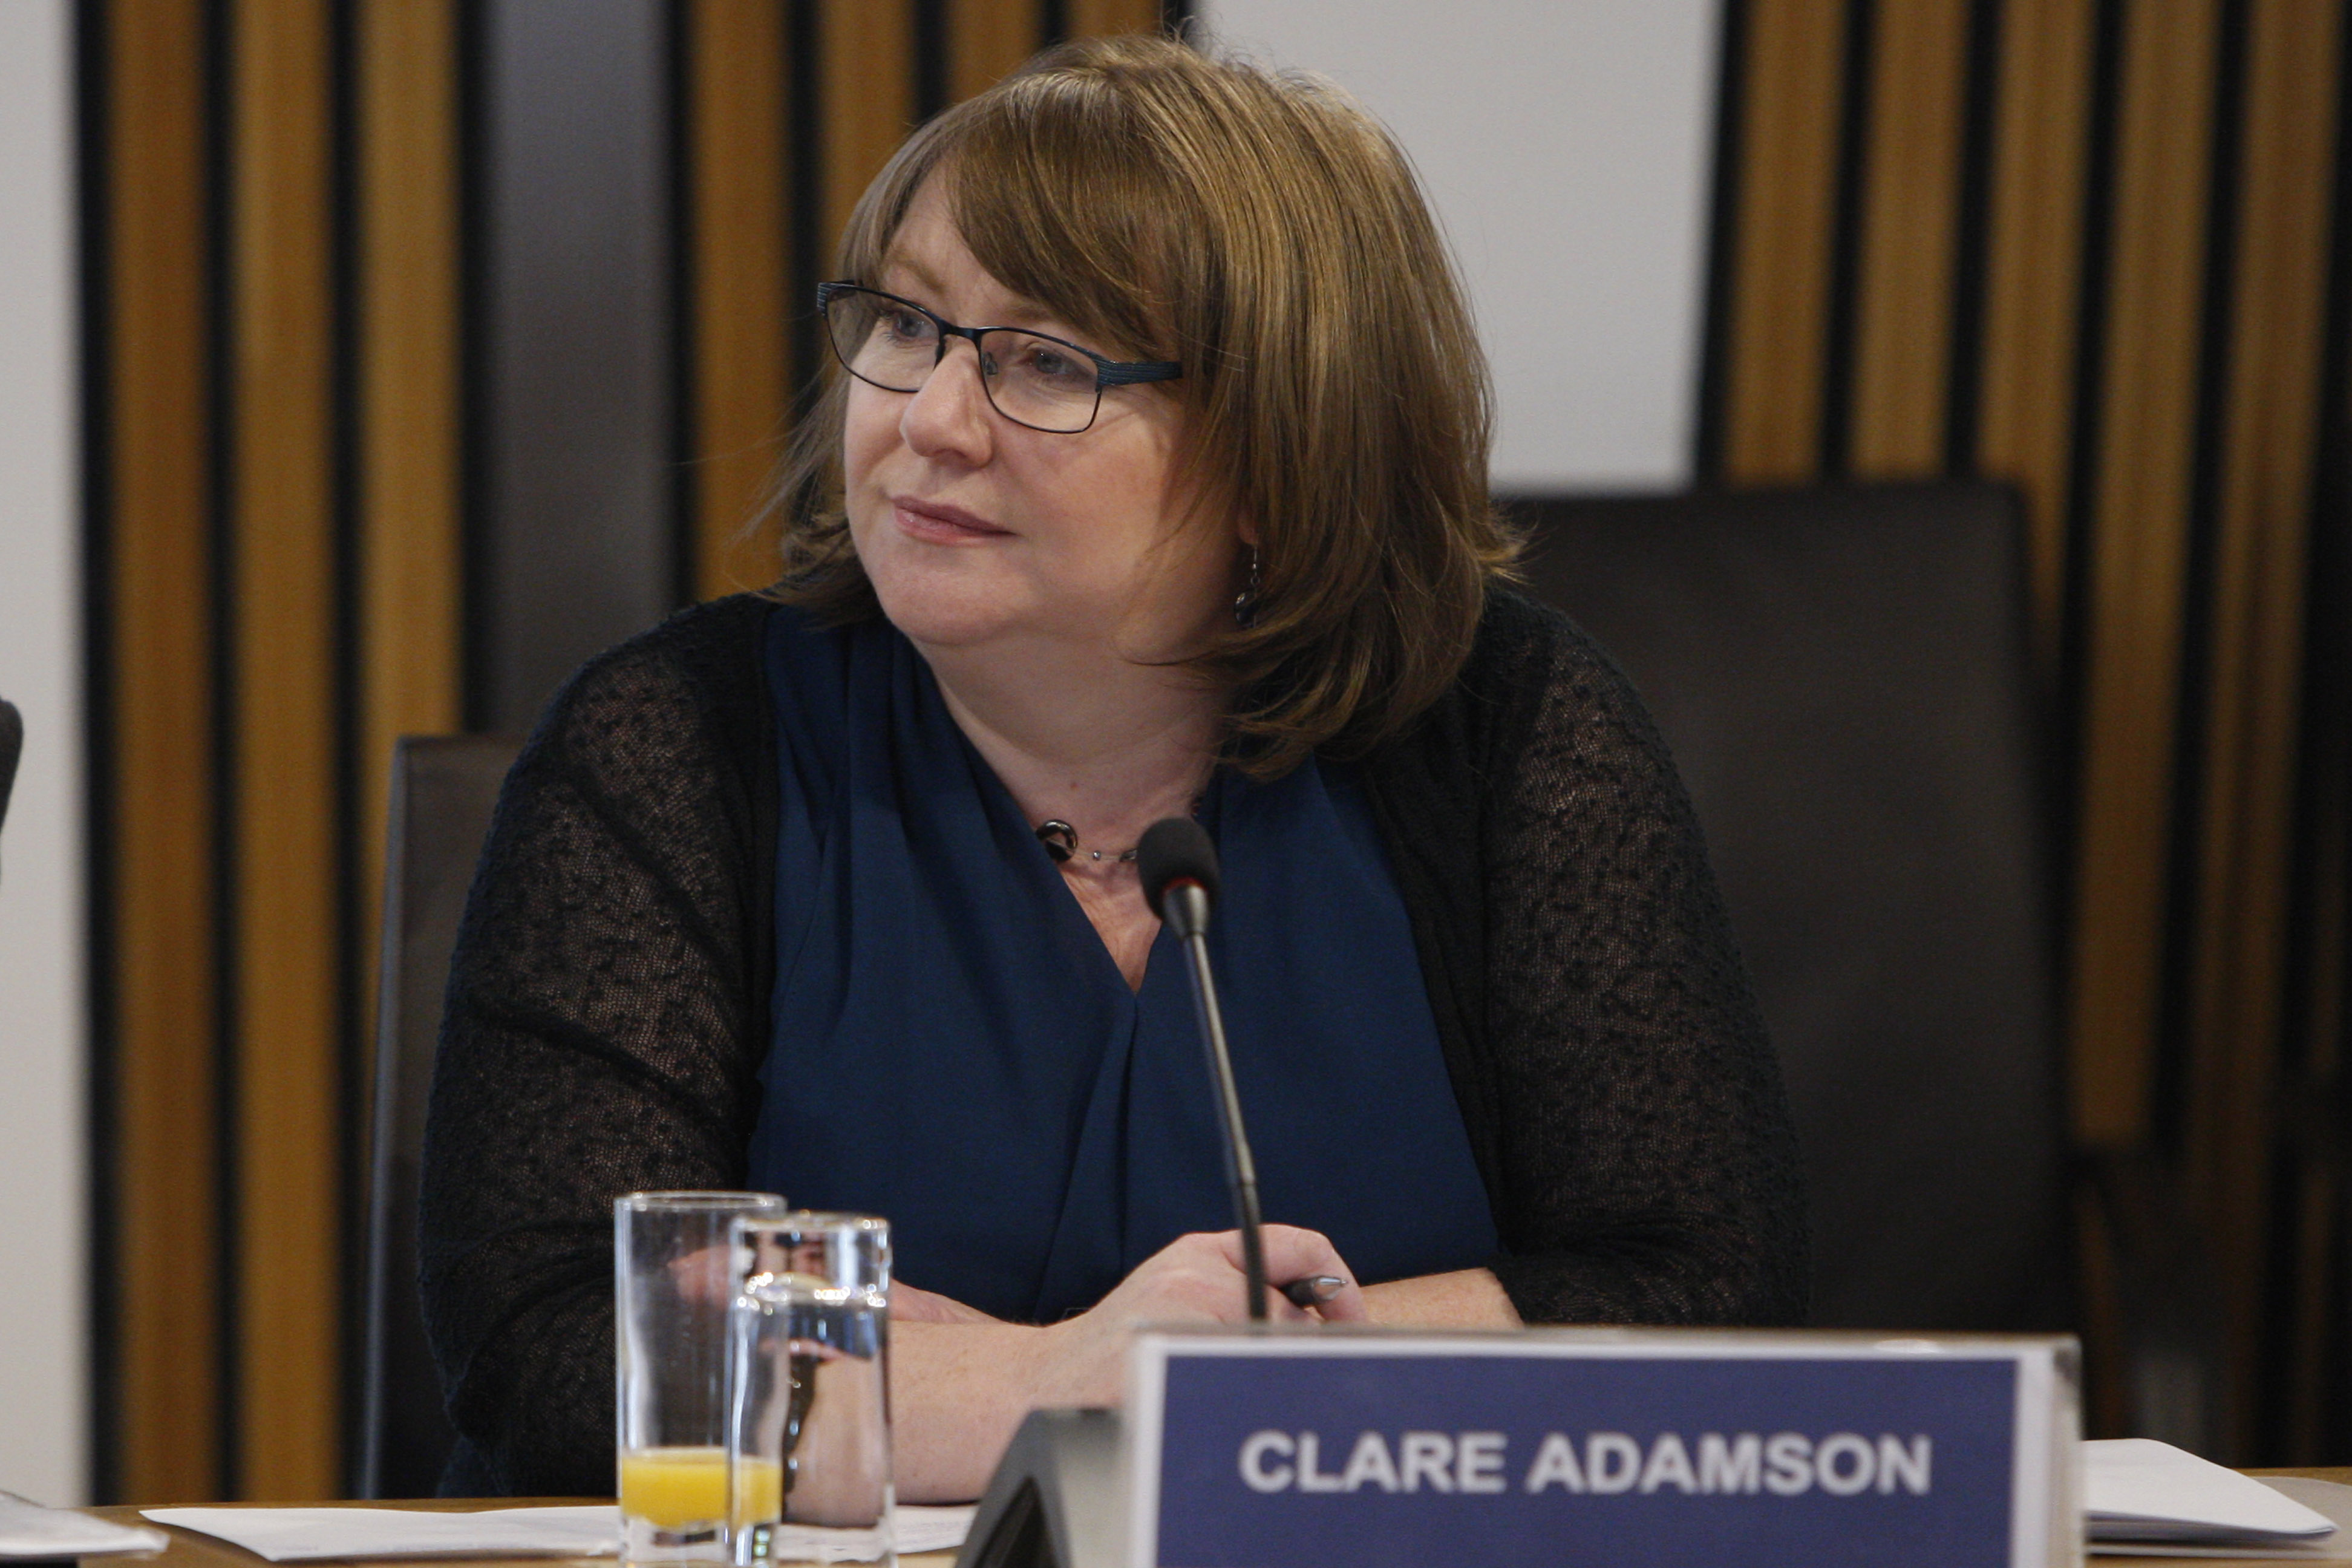 Clare Adamson MSP Convener of theStandards, Procedures and Public Appointments Committee at Convener's Group